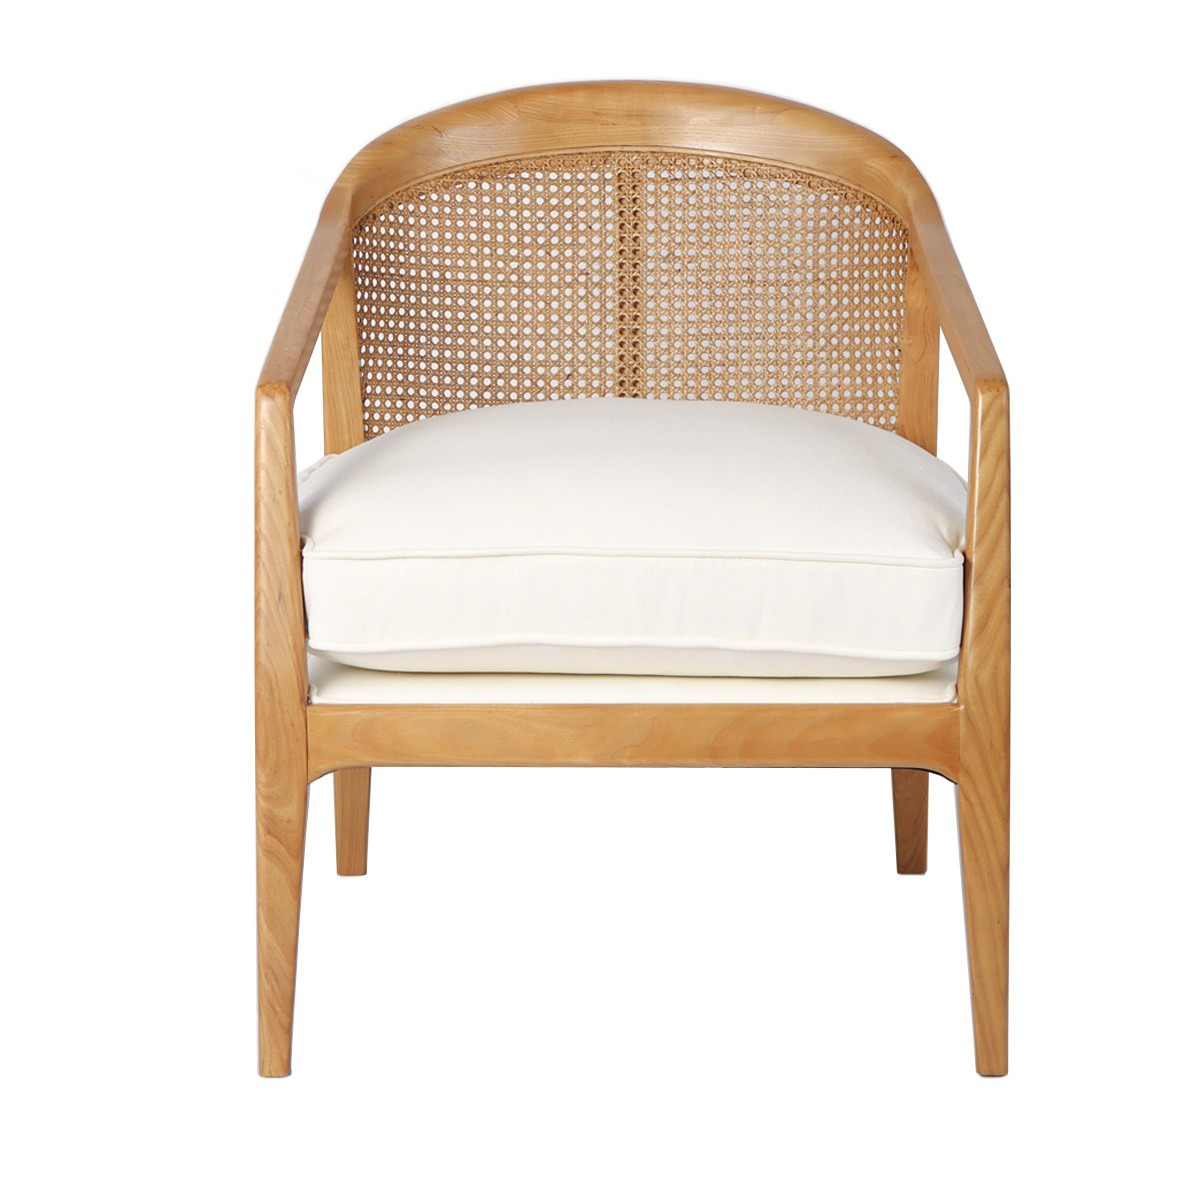 Willow Oak Timber & Rattan Occasional Armchair, Natural / Off White